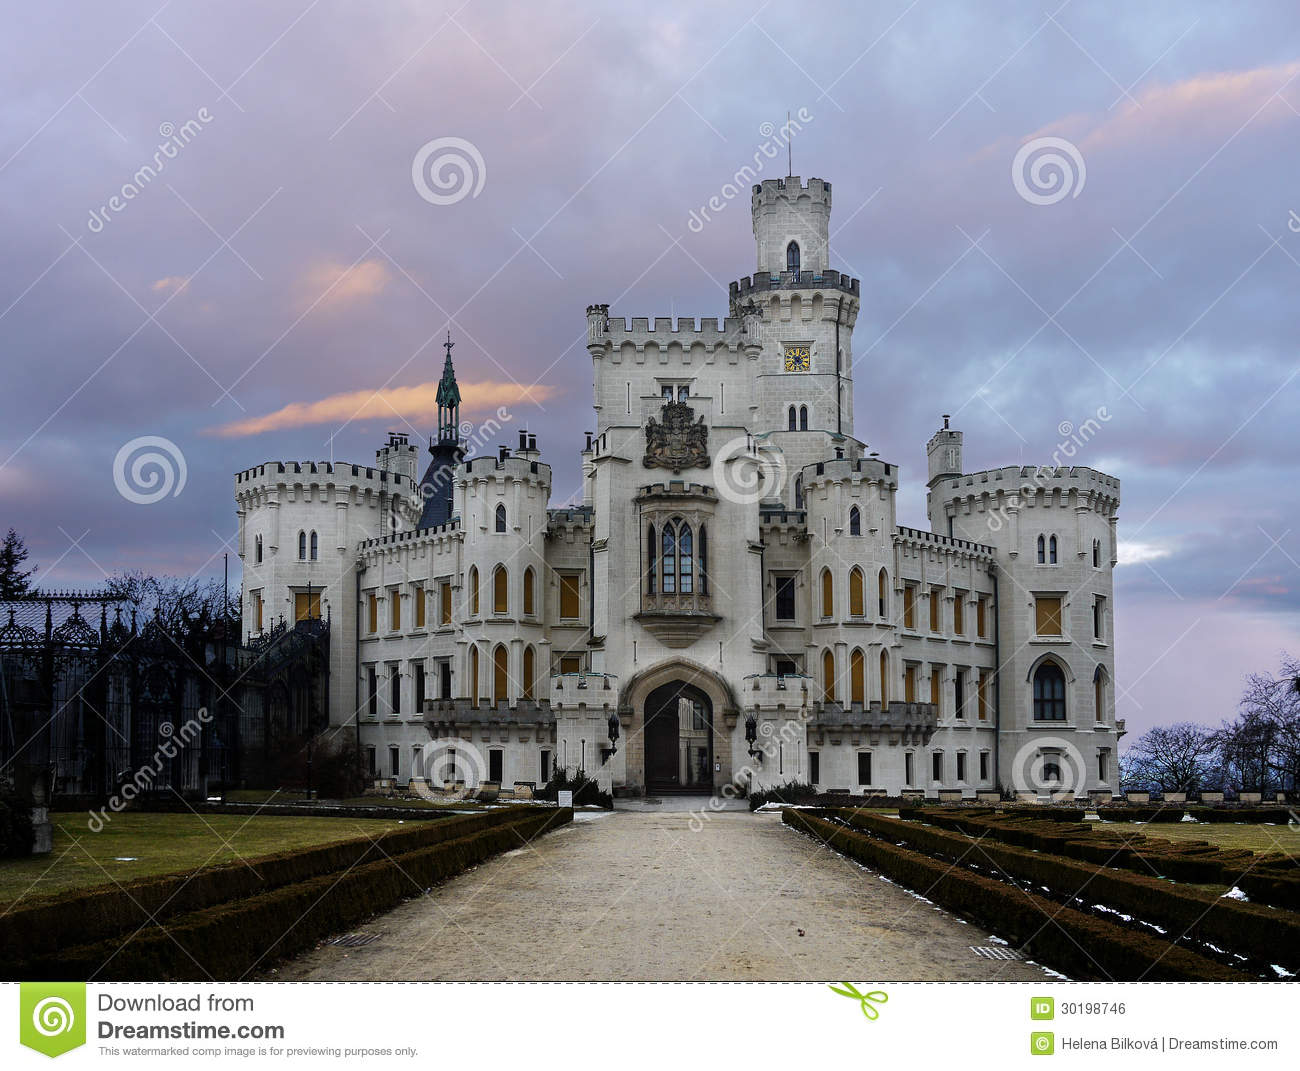 Castle Hluboka Landmark Fairytale Exterior Stock Photography.